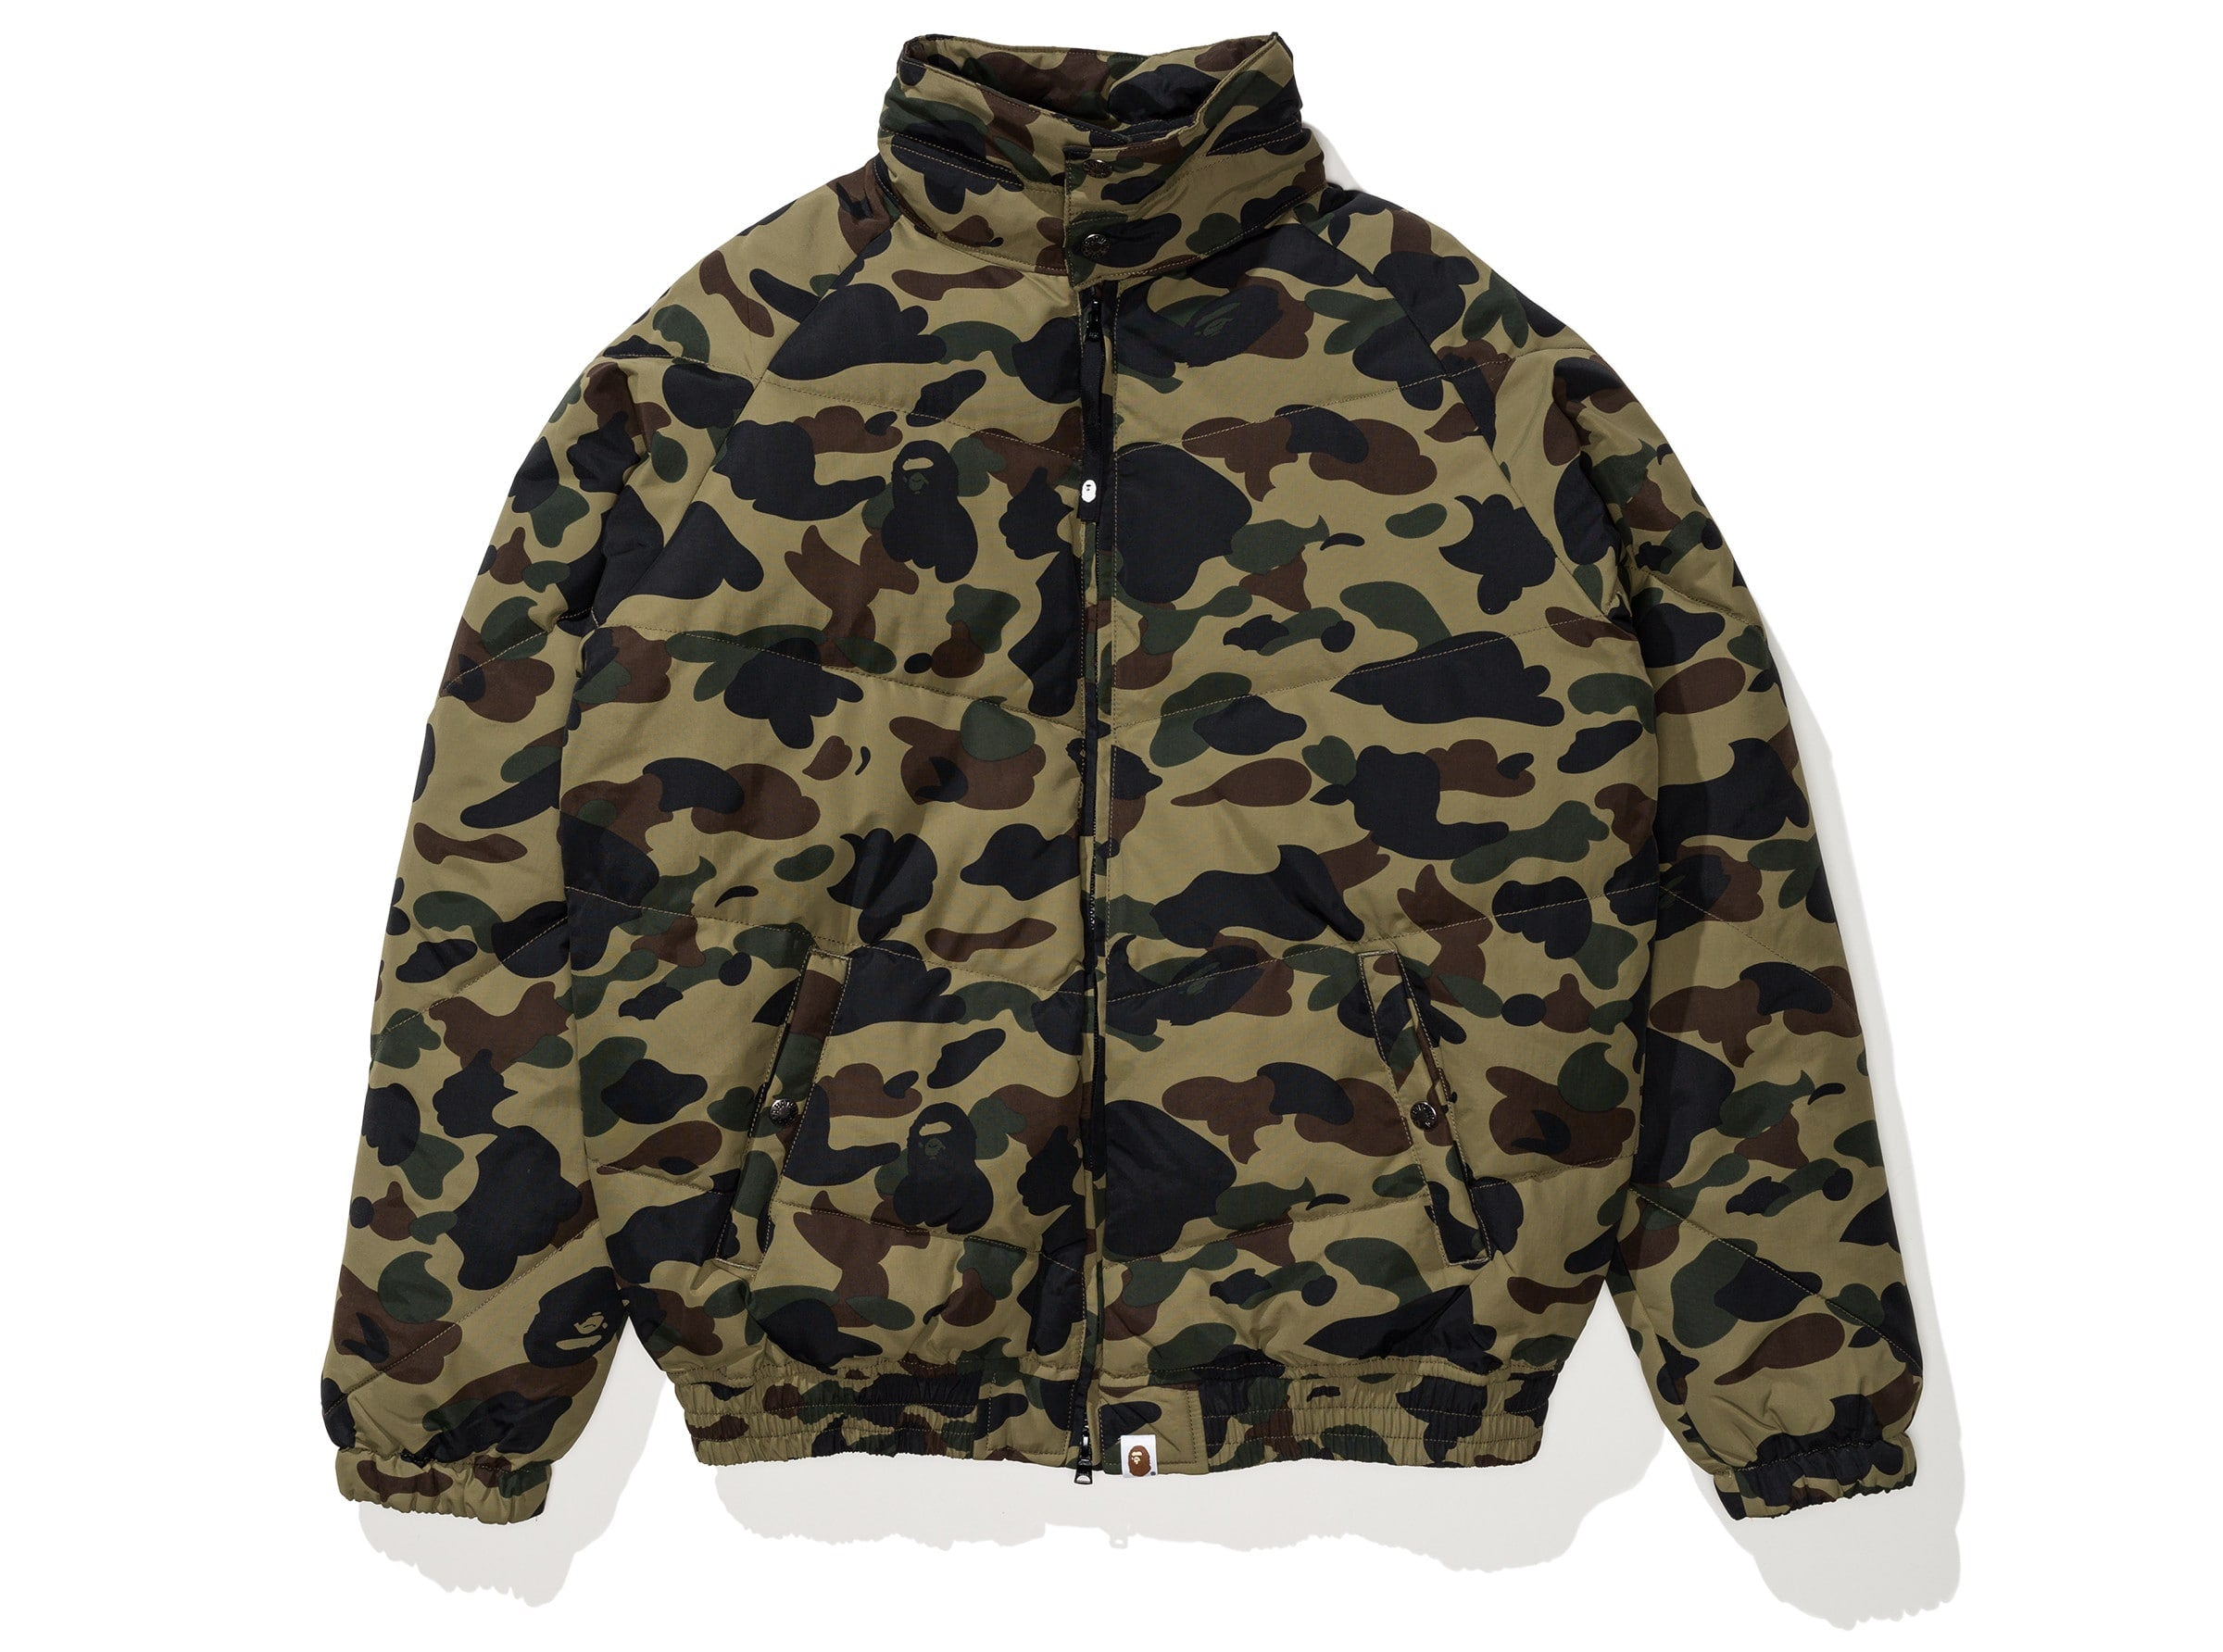 51600c3f BAPE 1ST CAMO DOWN JACKET - GREEN | Undefeated